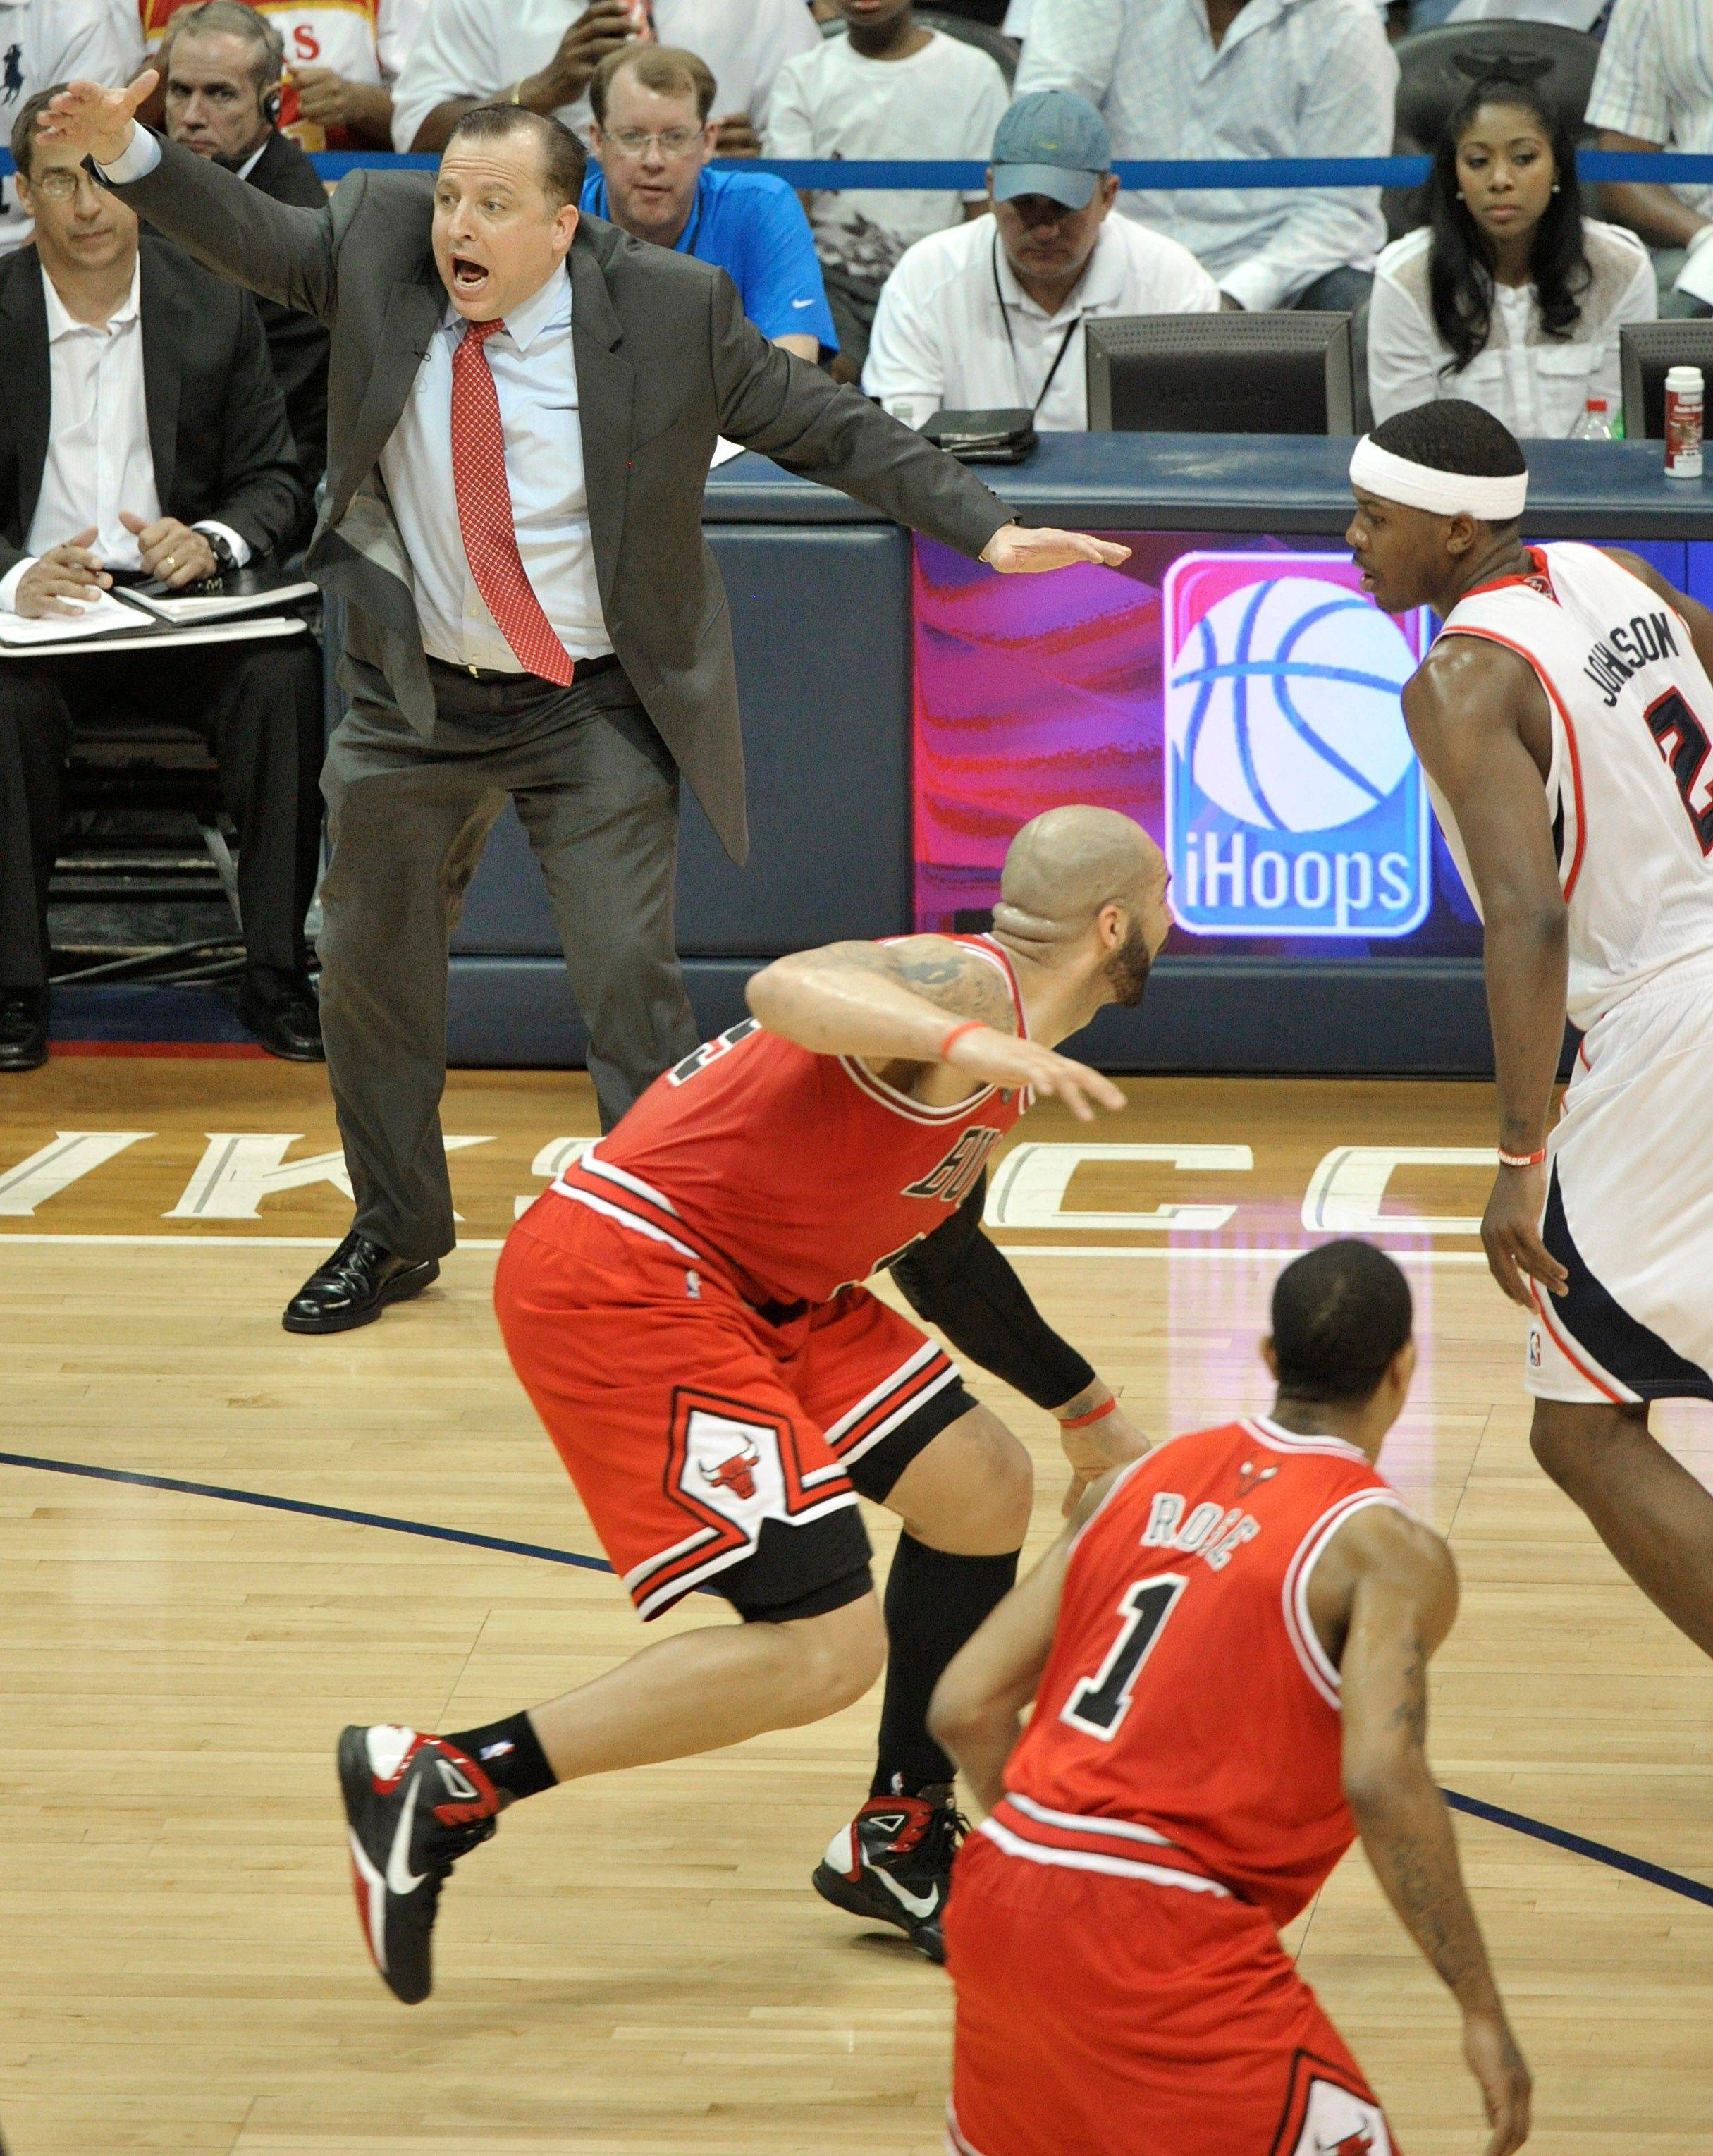 Chicago Bulls head coach Tom Thibodeau reacts to play as Atlanta's Joe Johnson moves the ball up court and Chicago's Carlos Boozer and Derrick Rose defend in the third quarter of Game 6.